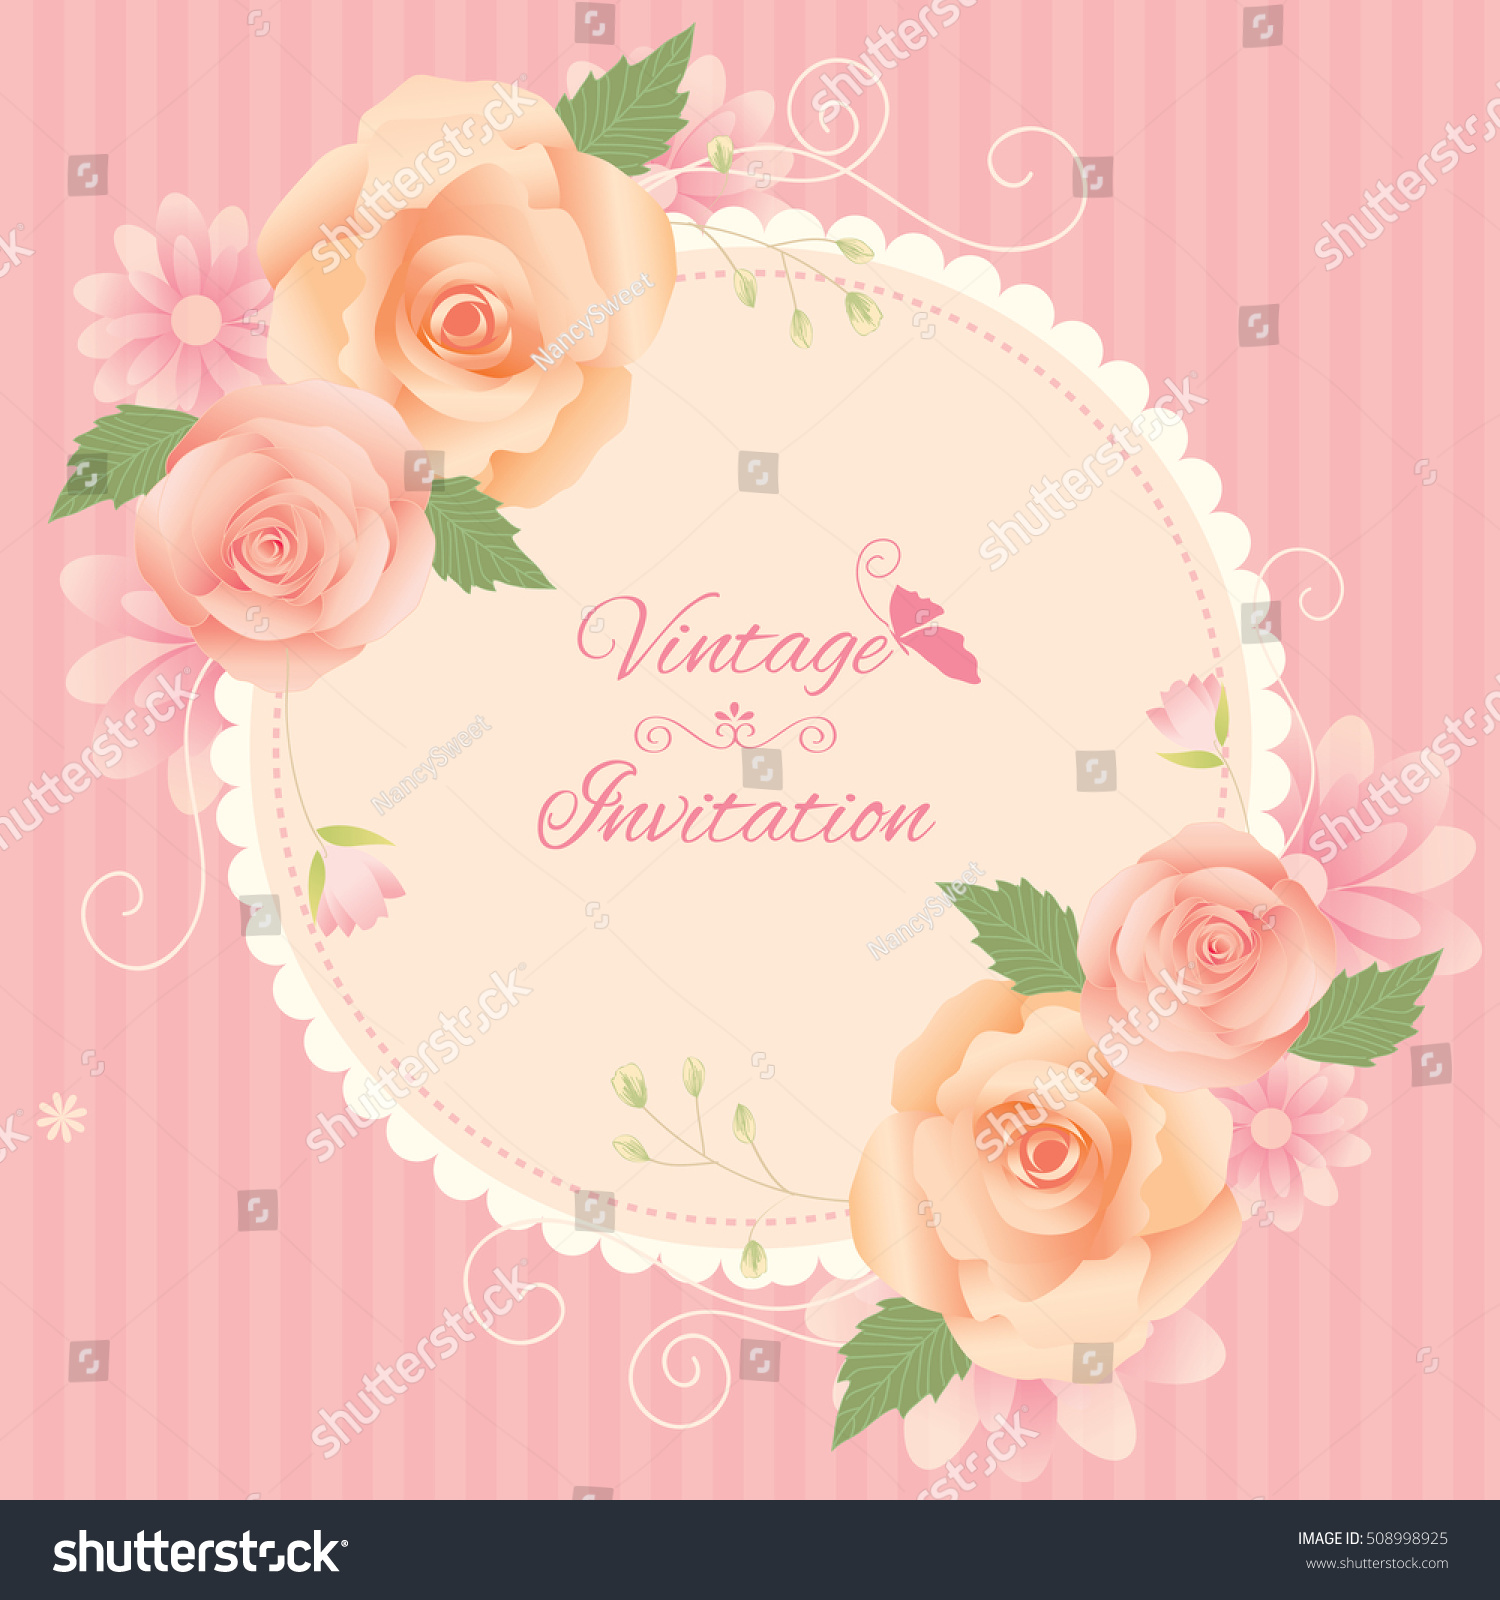 Vector round frame with pink flowers on white background in pastel - Flowers And Floral Wreath Of Vintage Style Illustration Vector Pink Pastel Colors Background